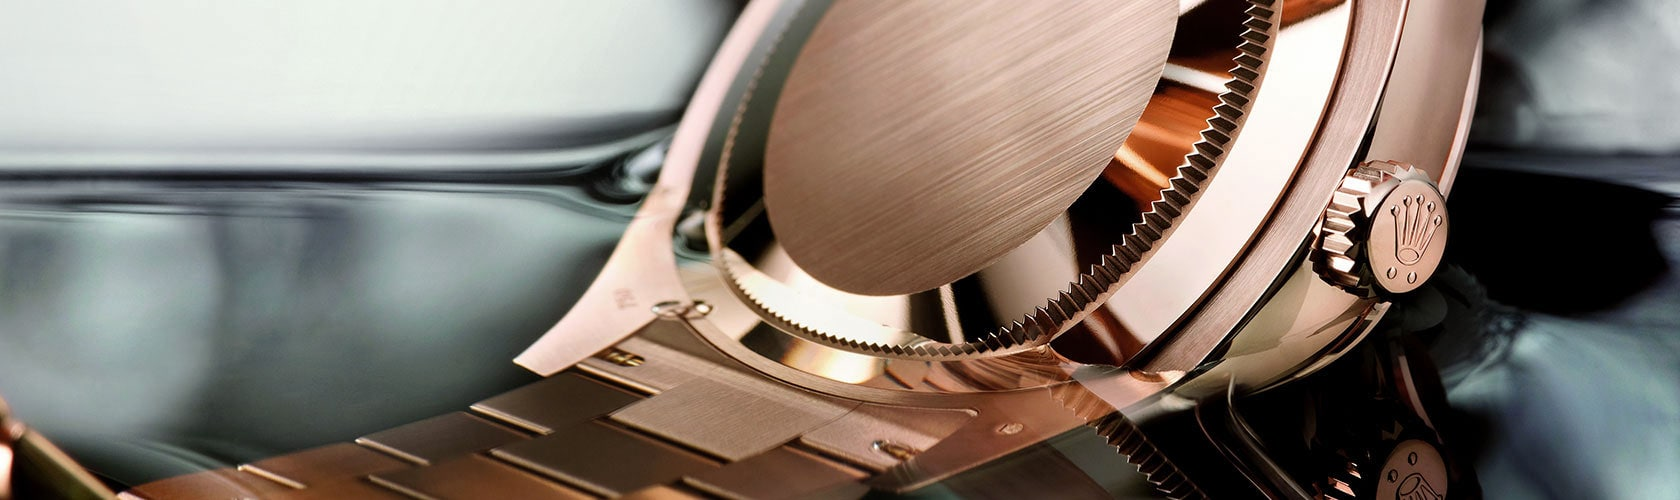 watchmaking_oyster_case_0001_1680x500